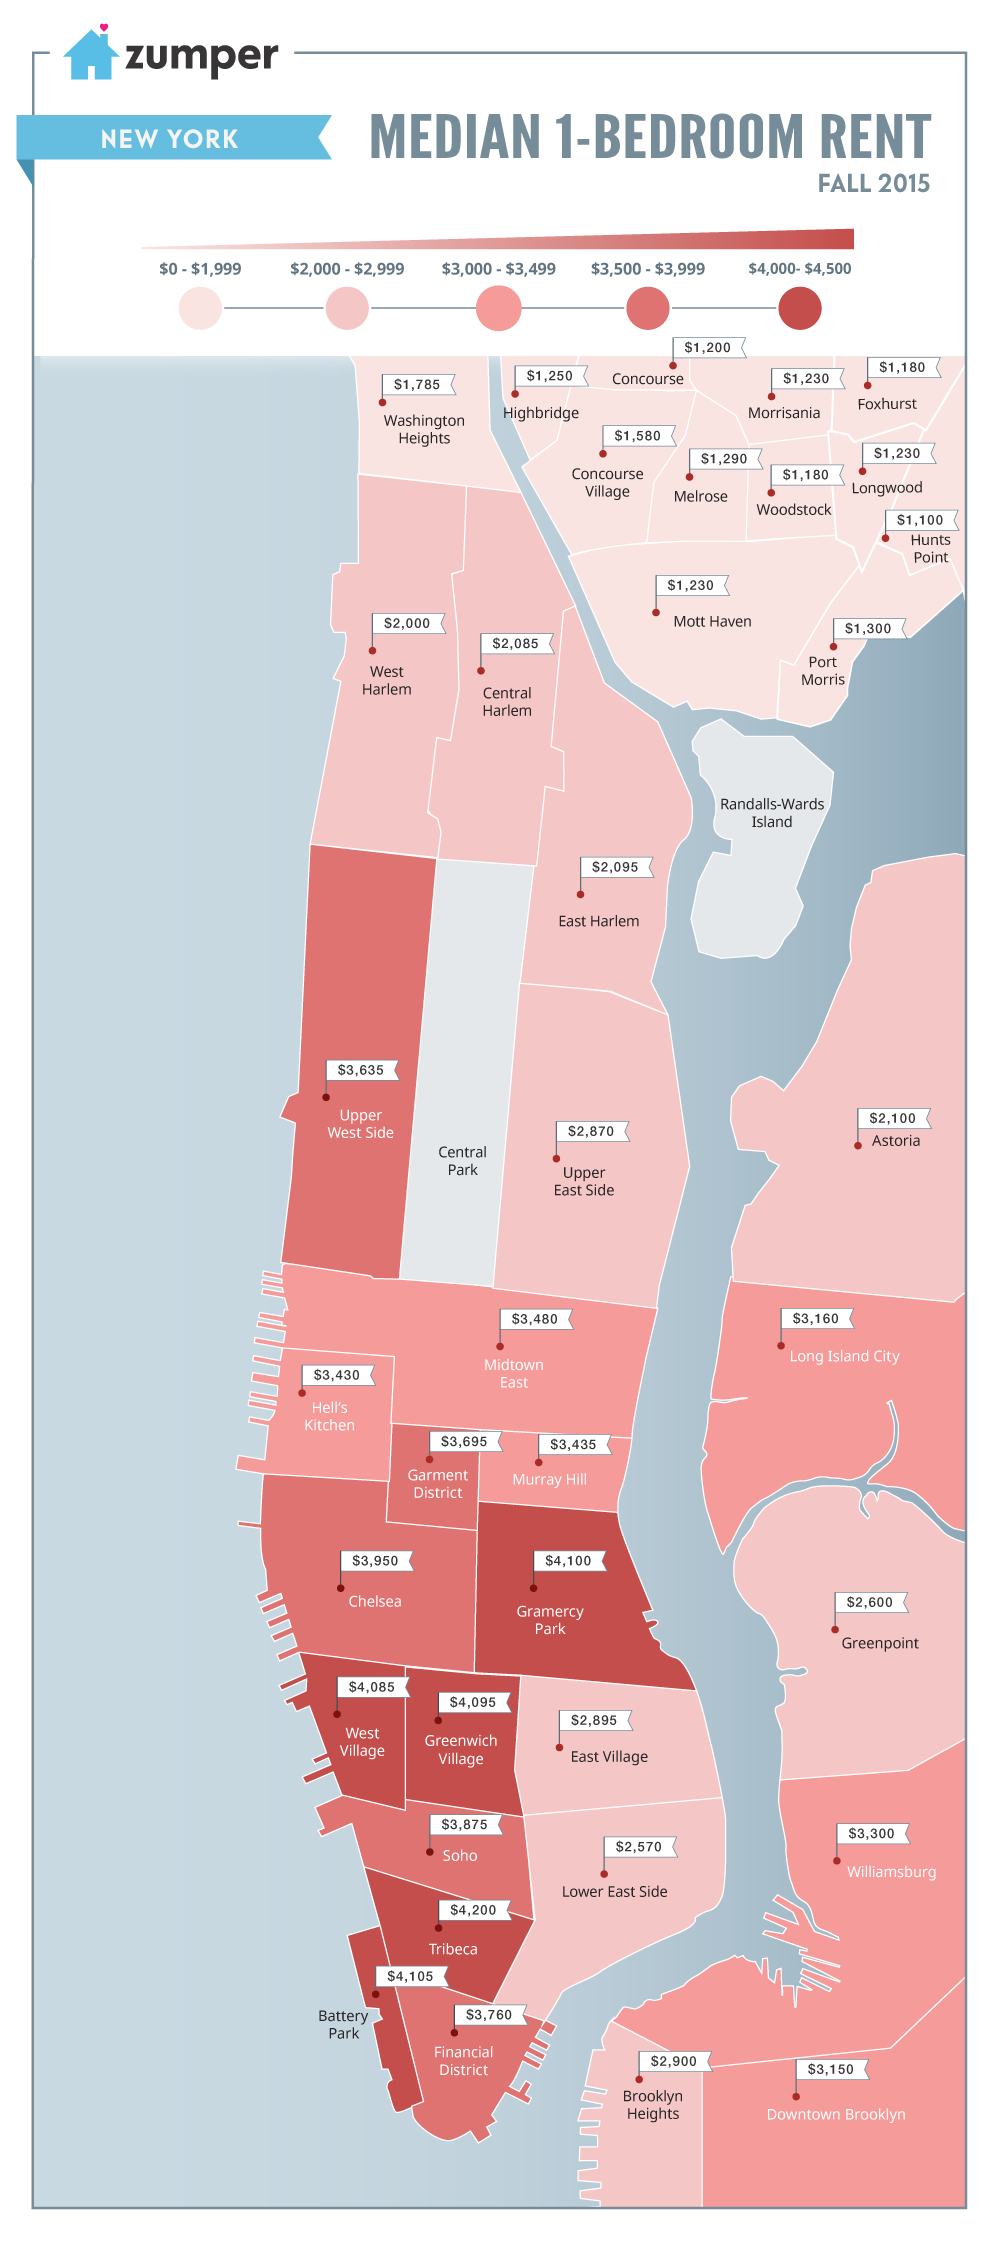 The Cheapest And Most Expensive Nyc Neighborhoods For Renters This Fall Mochileros